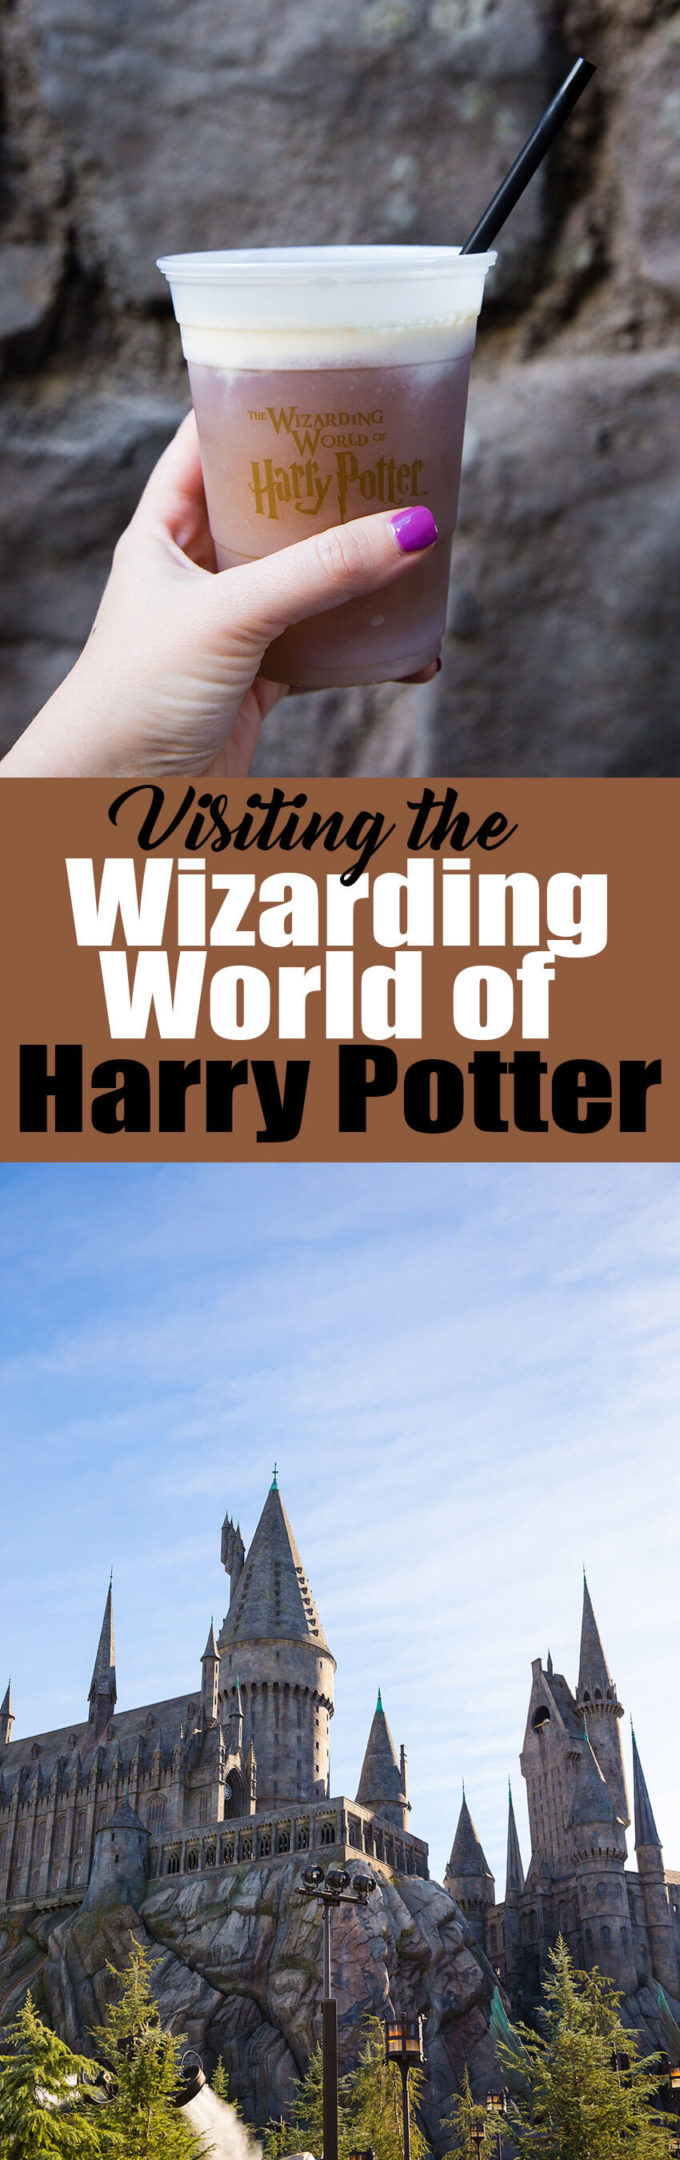 Everything you need to know to have a great visit to the Wizarding World of Harry Potter at Universal Studios Hollywood